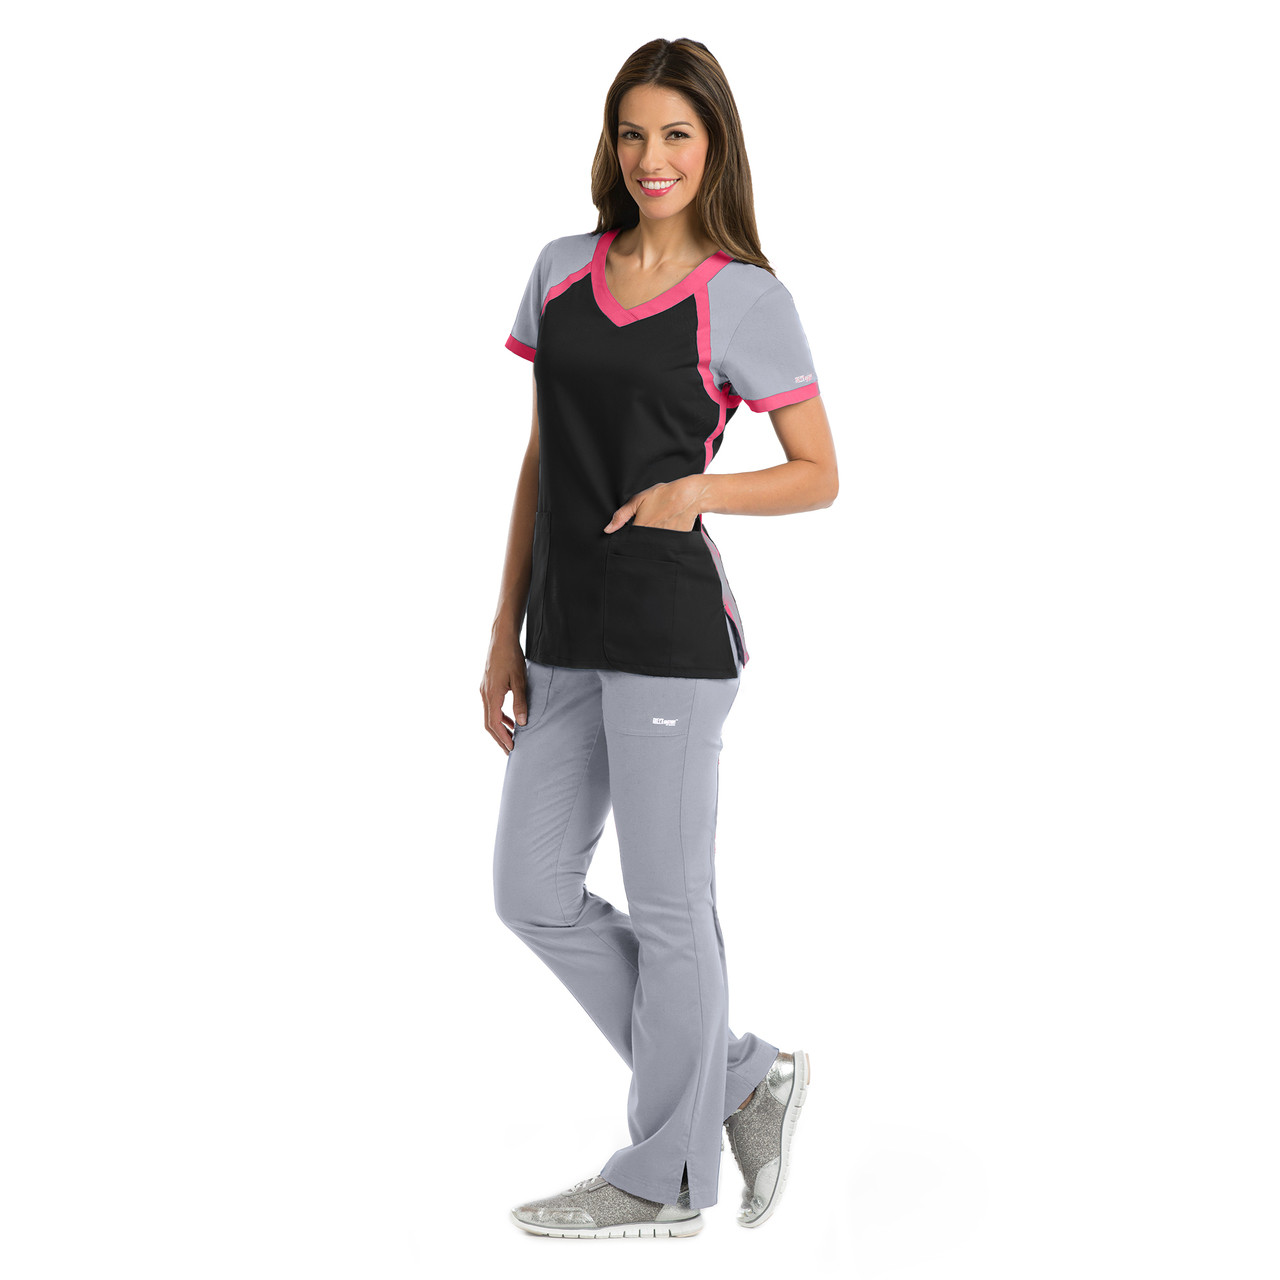 bb07cae2566 41435) - Grey's Anatomy Active 3 Pocket Color Block V-neck Scrub Top ...